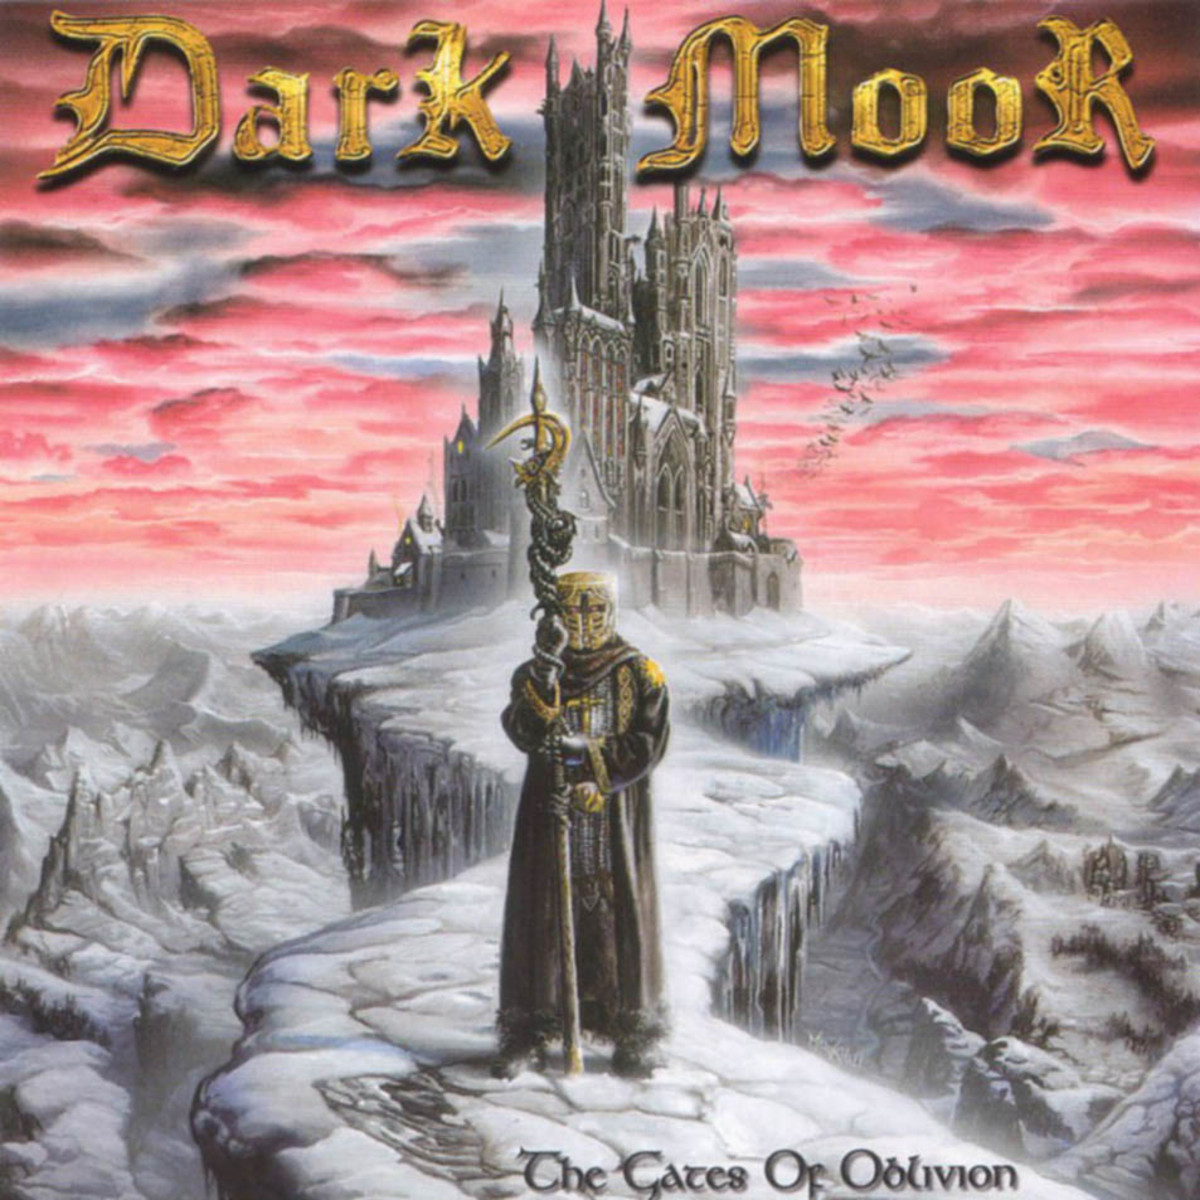 The album's cover shows a warrior or some kind of knight guarding a castle that stands in the distance. Dark Moor's album covers are similar to bands such as Rhapsody of Fire.